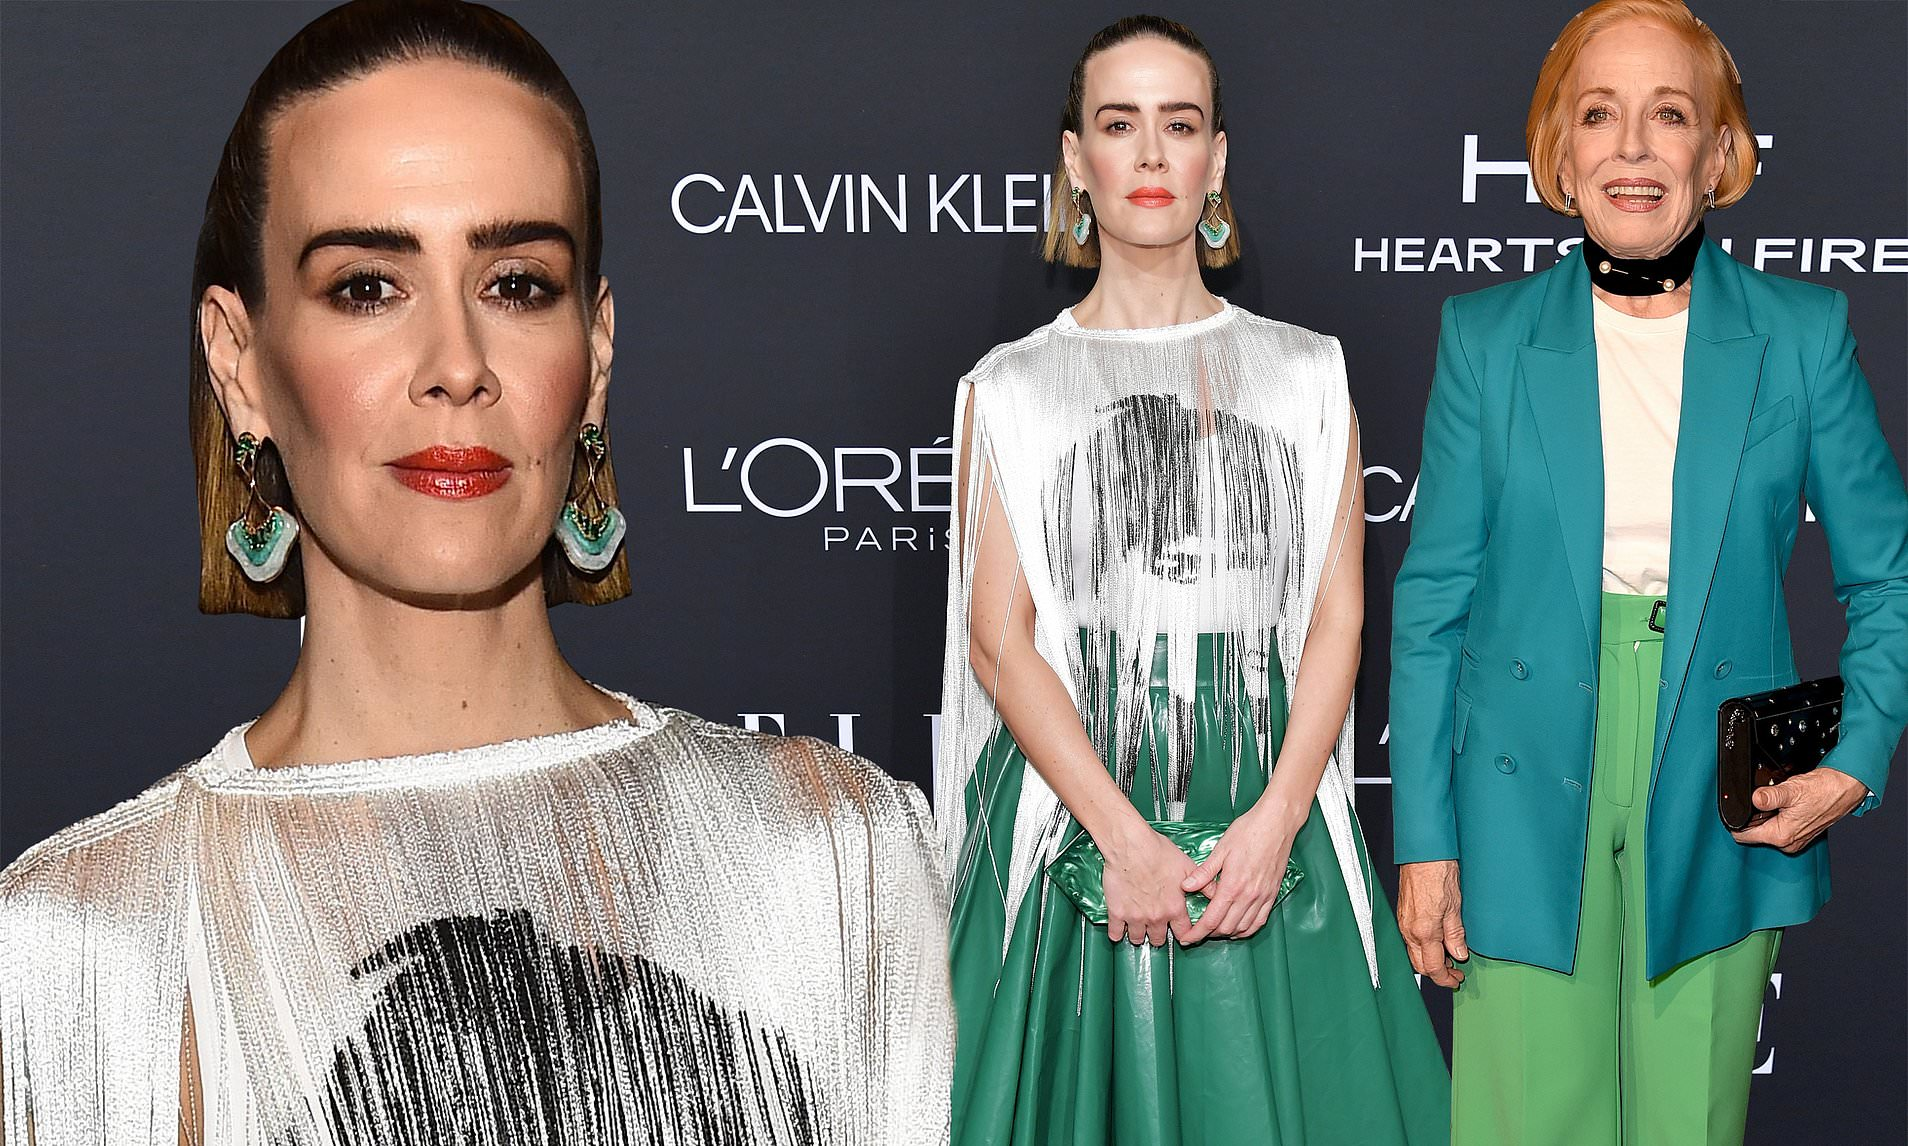 Colored Christmas Karla Winfrey With Sarah Paulson Attends ELLE Bash Holland Taylor After Discussing